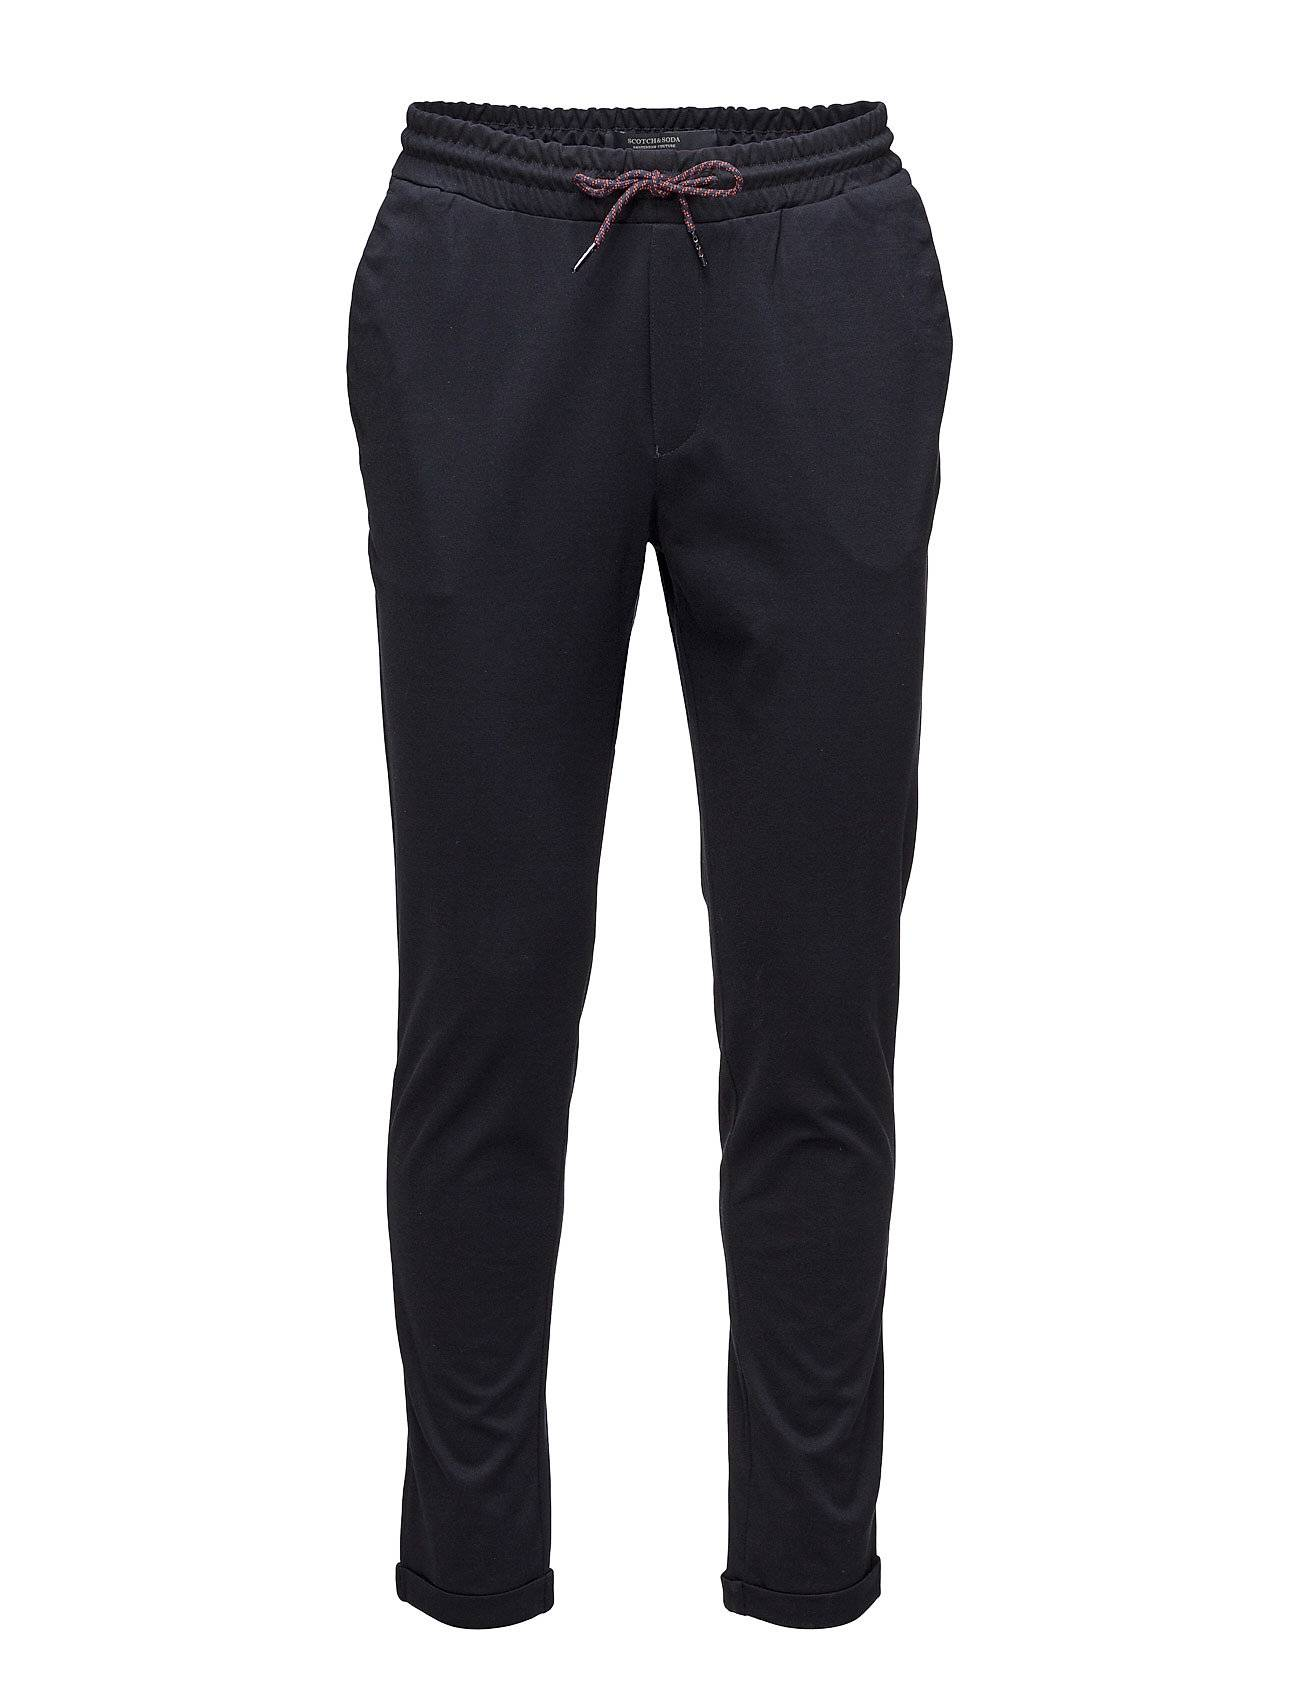 Scotch & Soda Chic Sweat Pant In Cotton/ Polyester